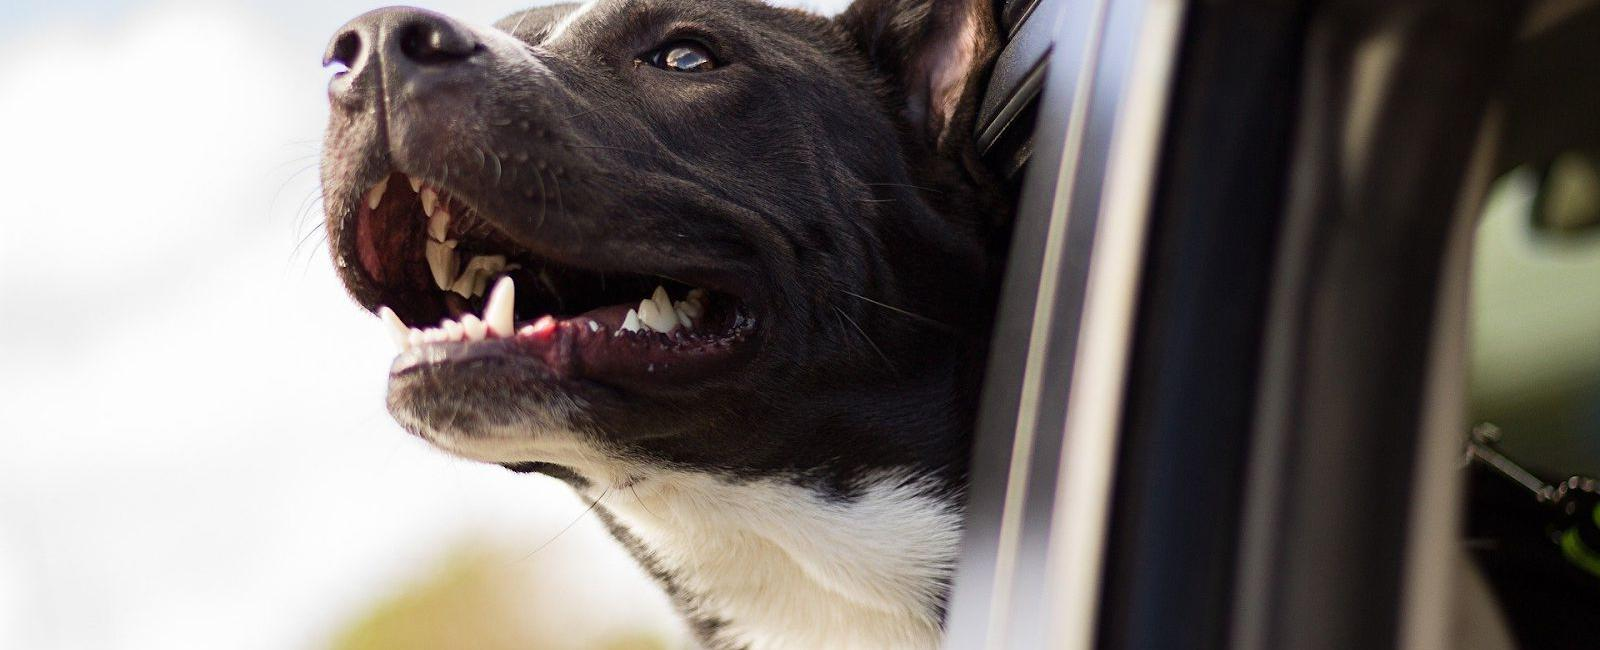 10 Easy Ways to Get Dog Hair Out of Your Car